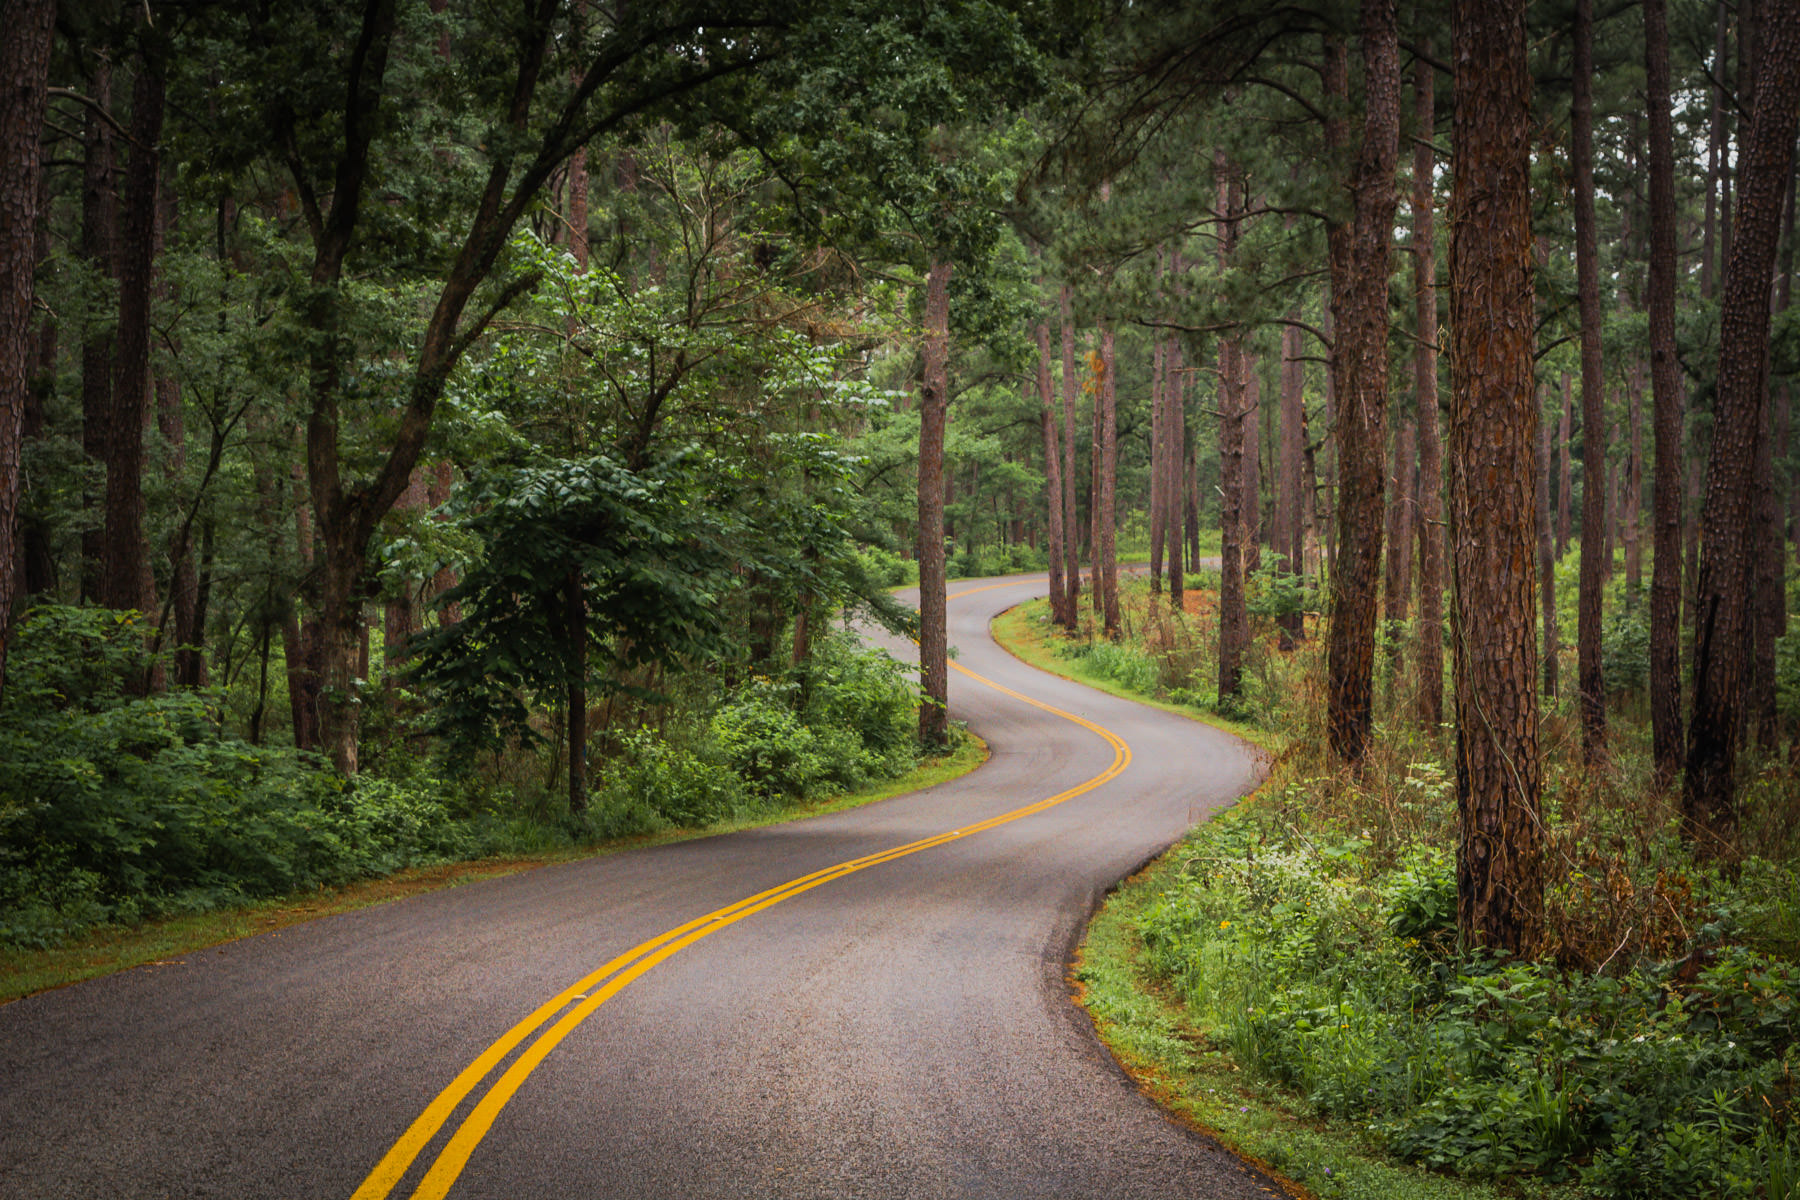 A road winds through the pine tree forest at Tyler State Park, Texas.